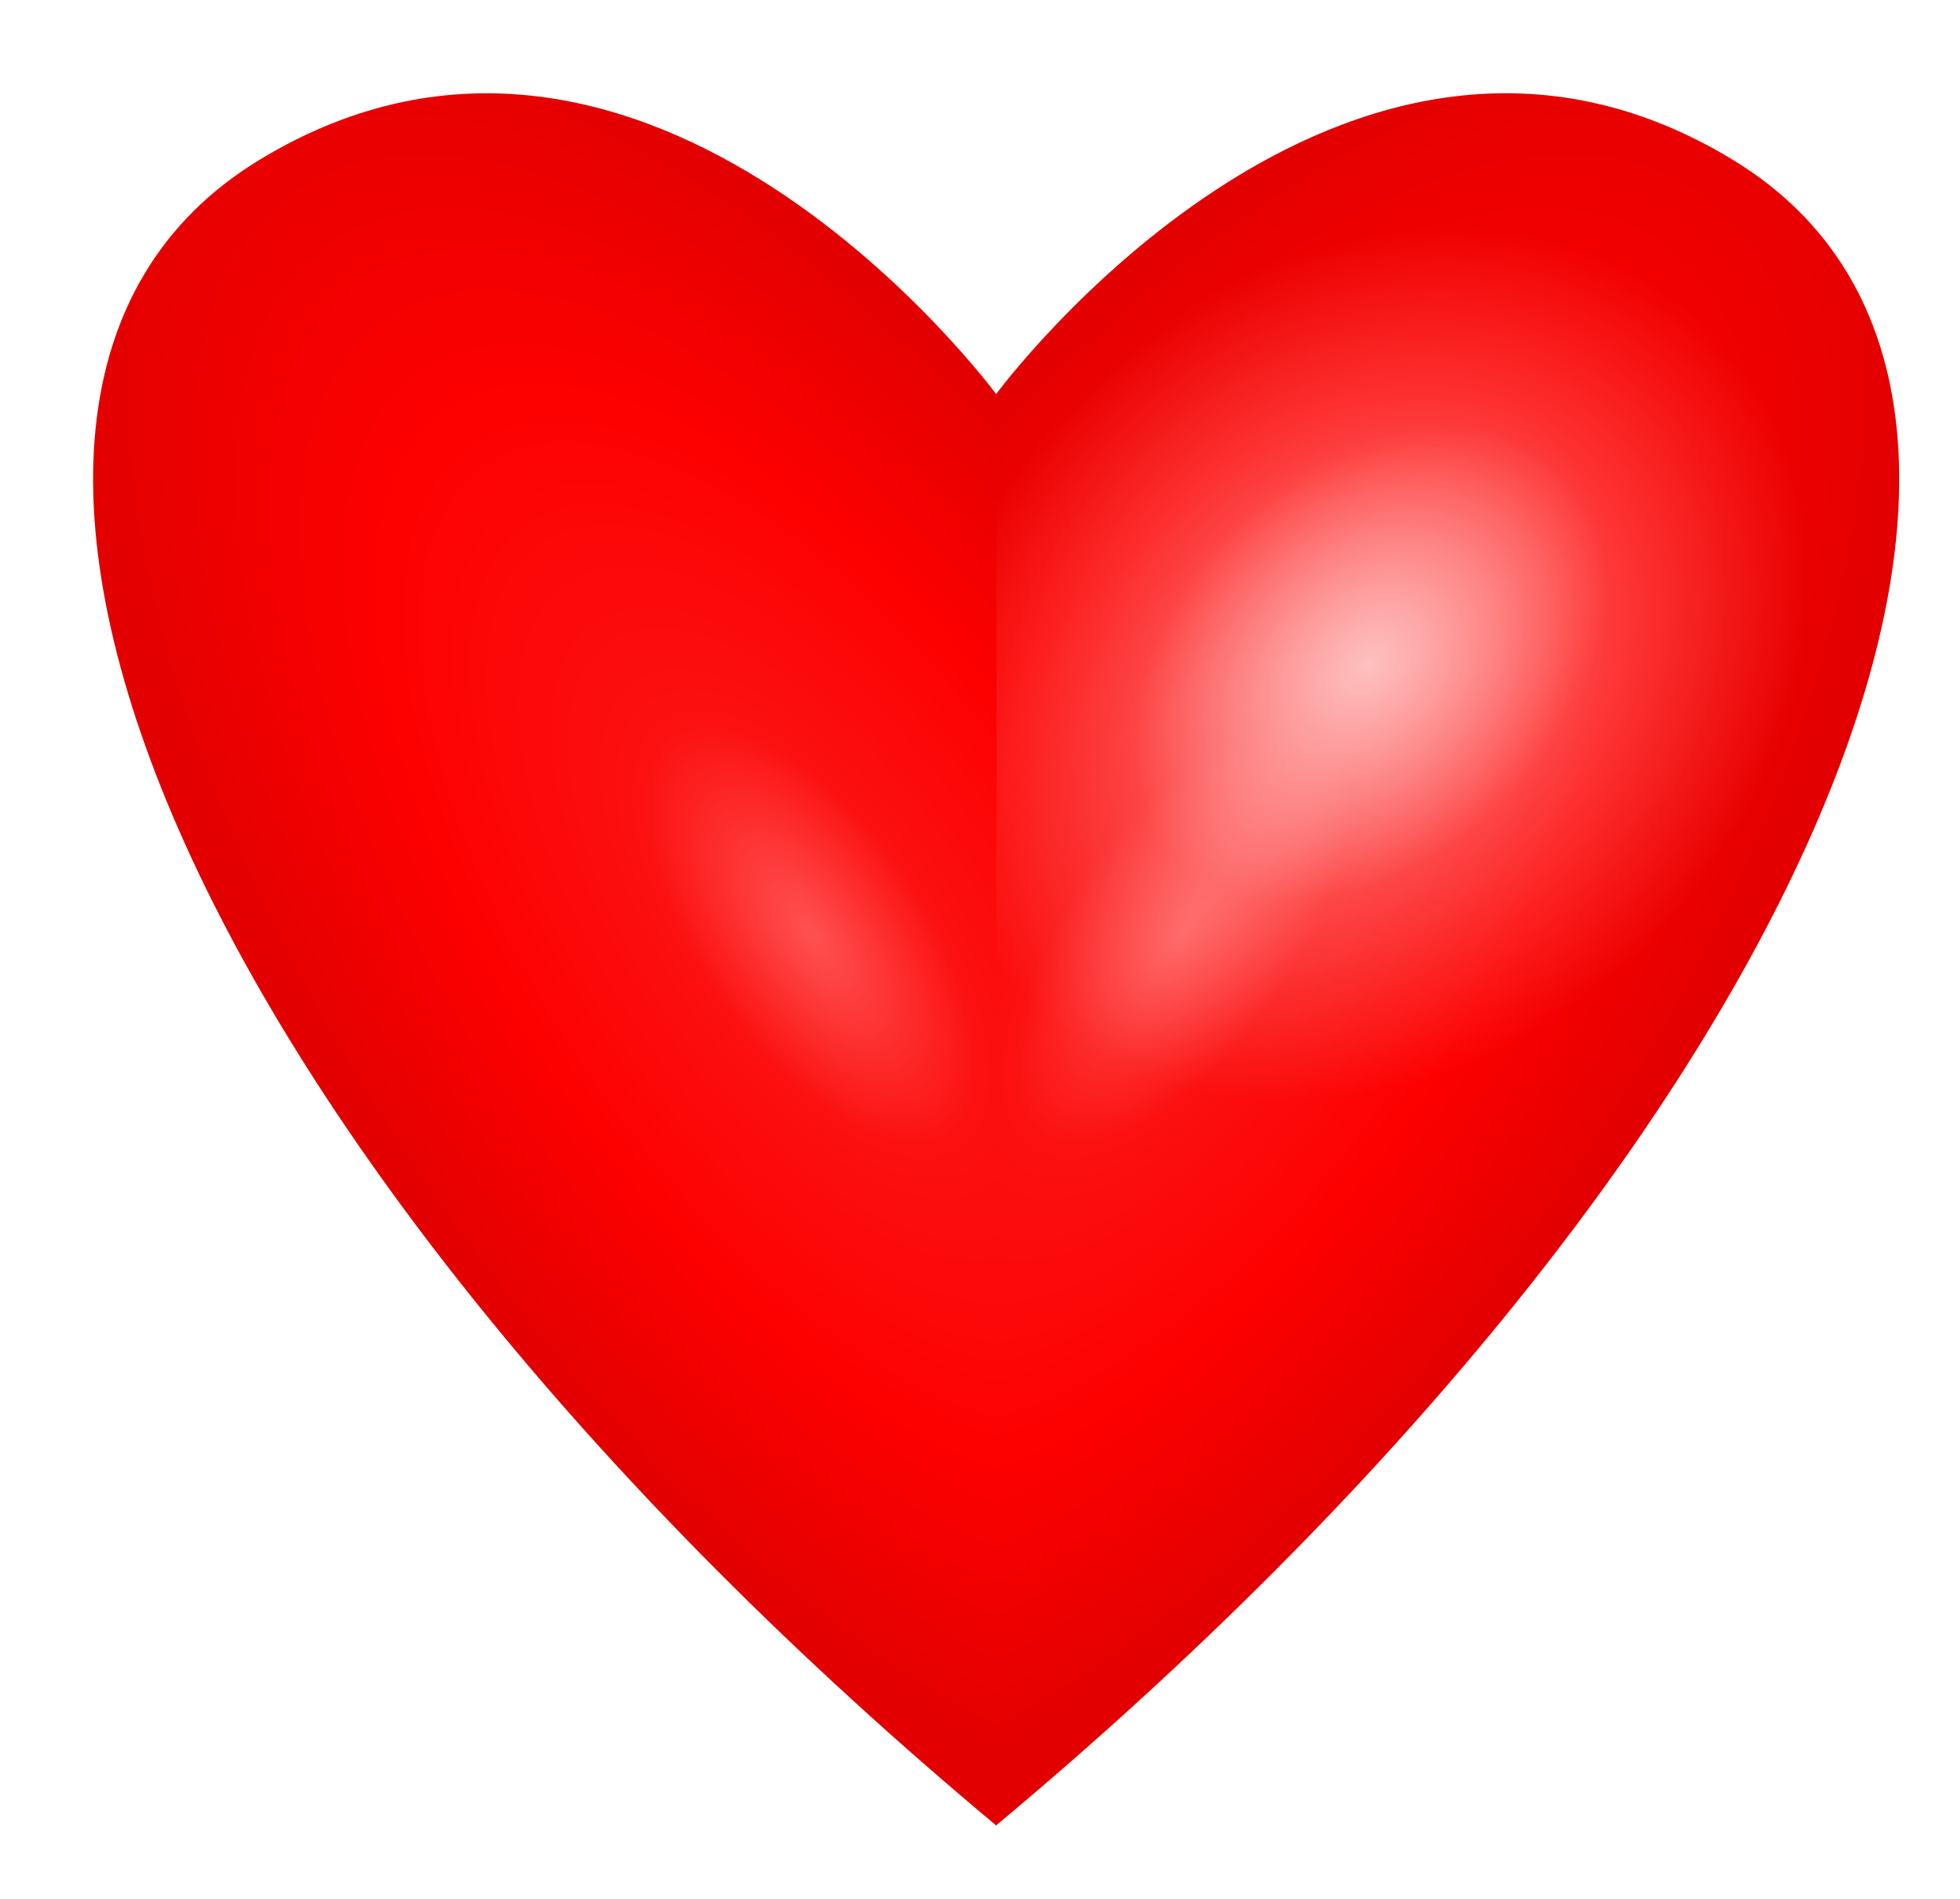 Love Heart Clipart Free Download Clip Art.